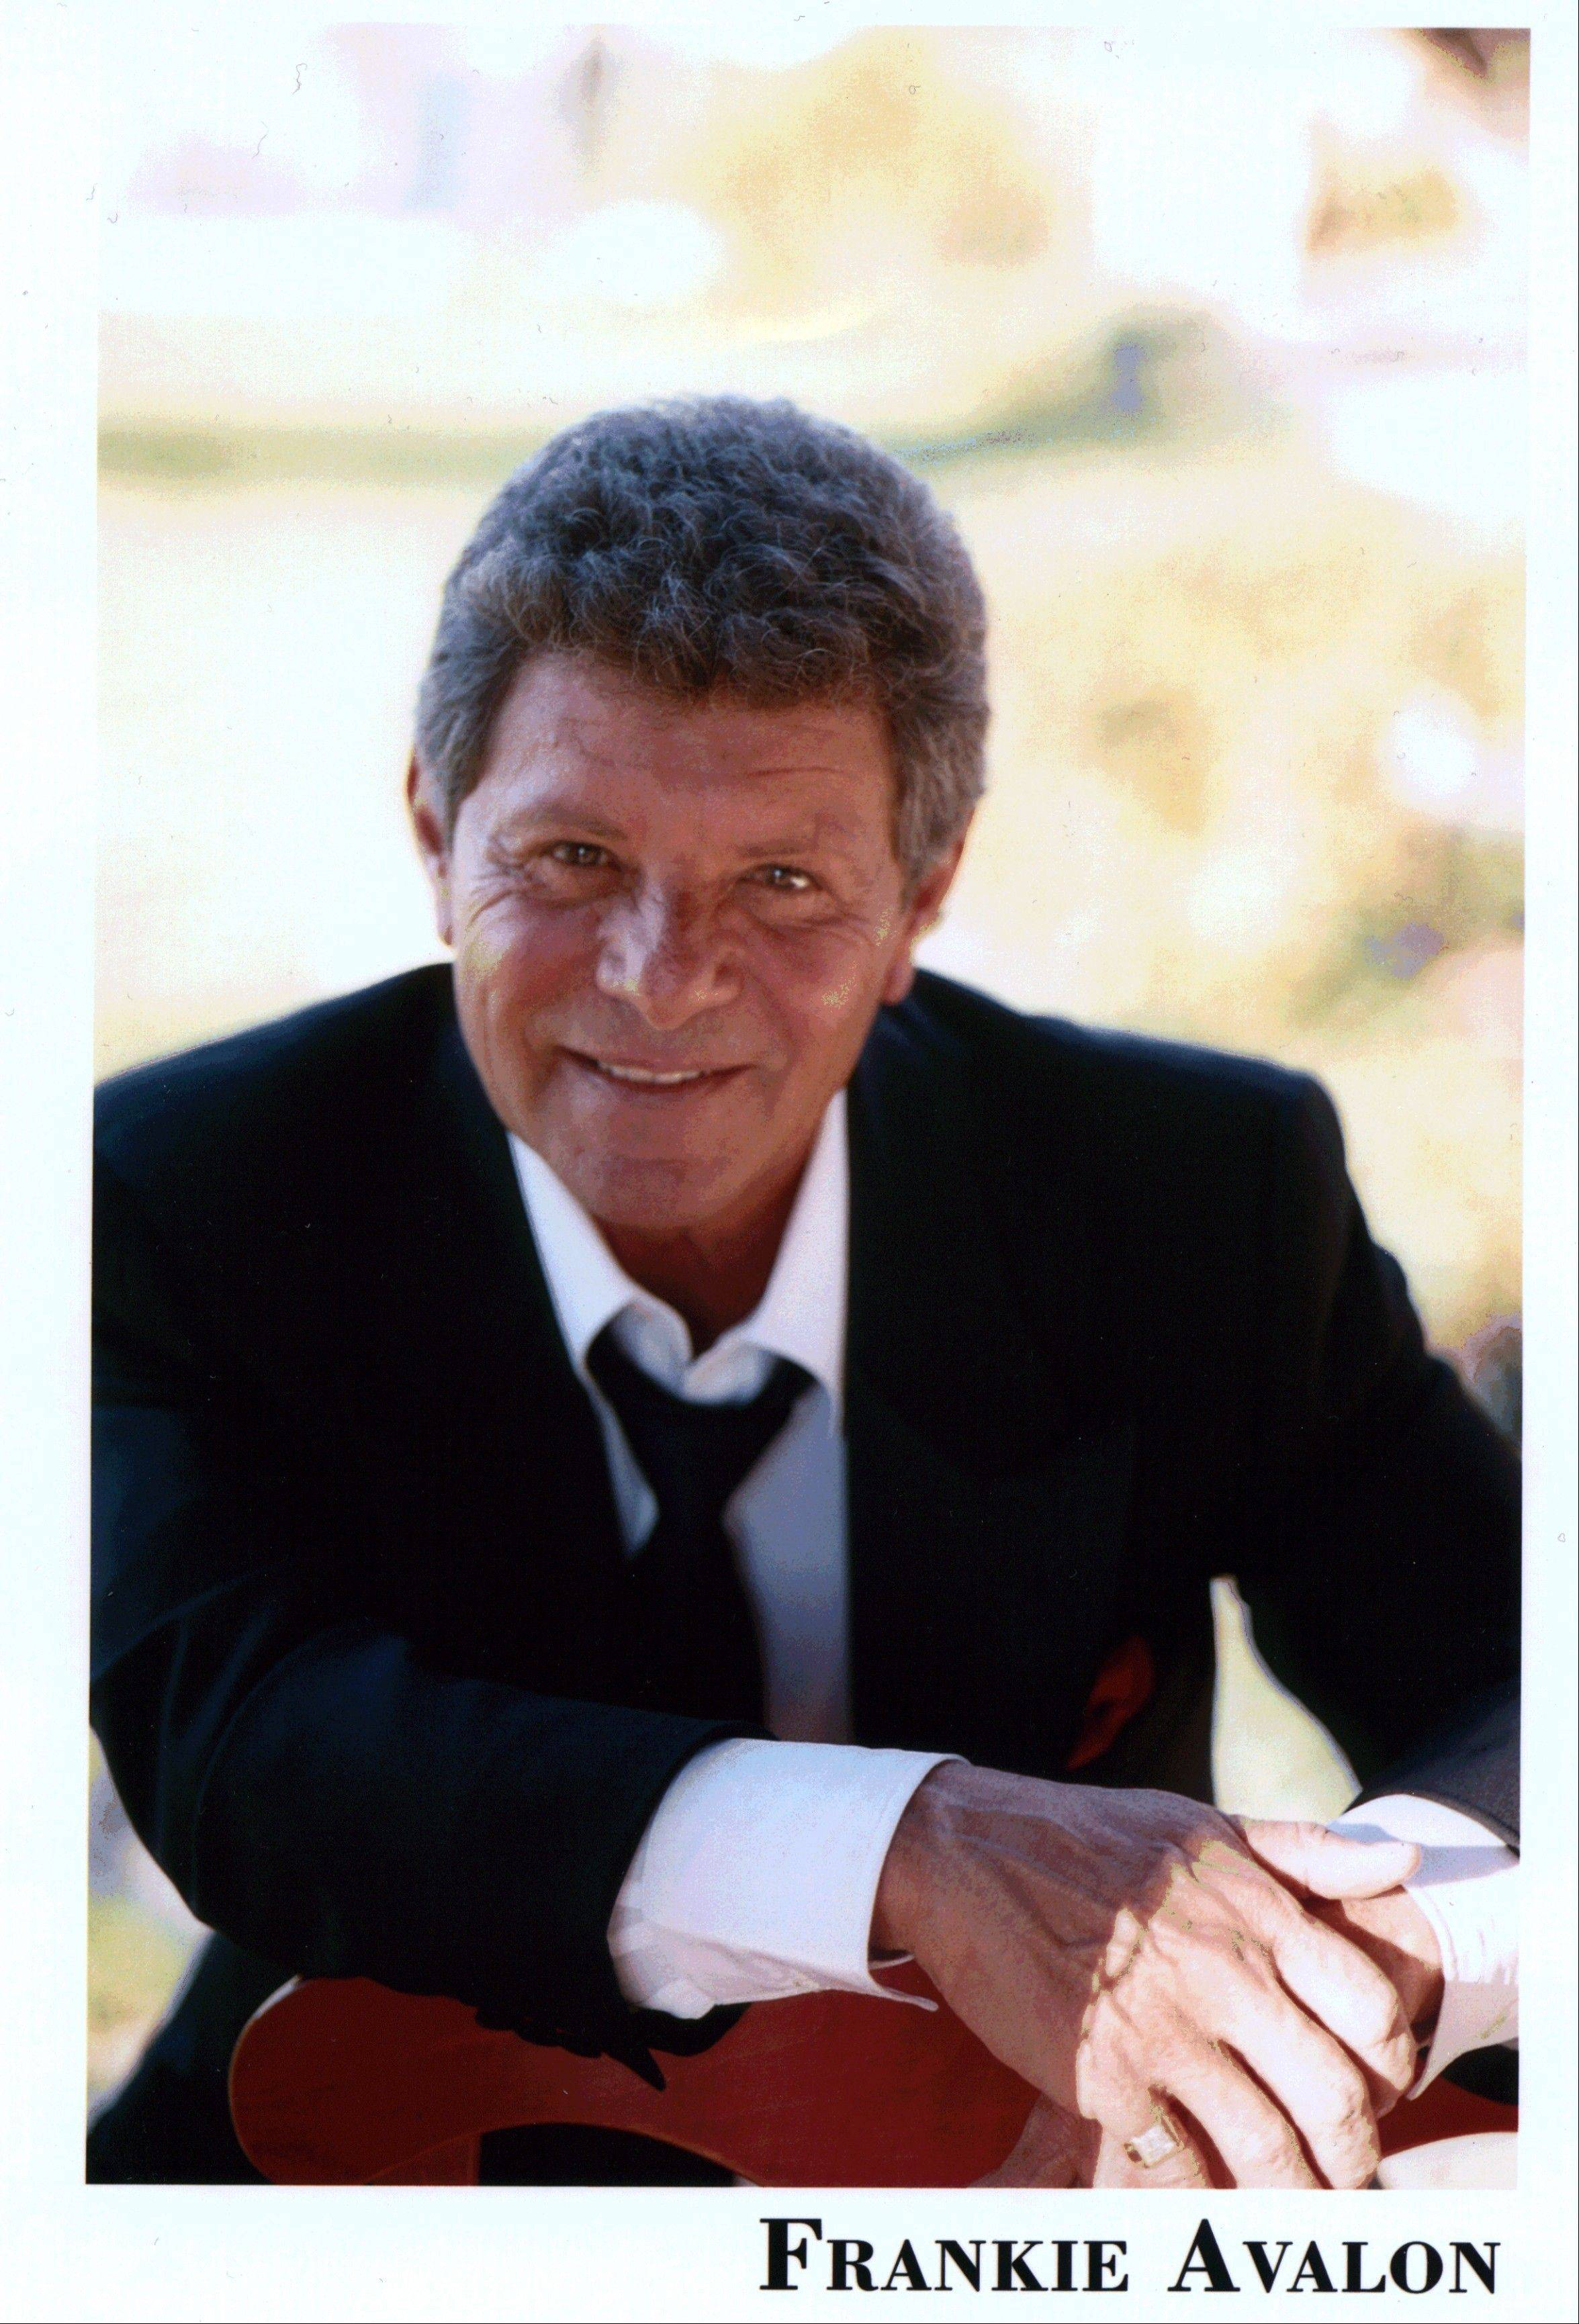 Frankie Avalon performs at the Arcada Theatre in St. Charles.